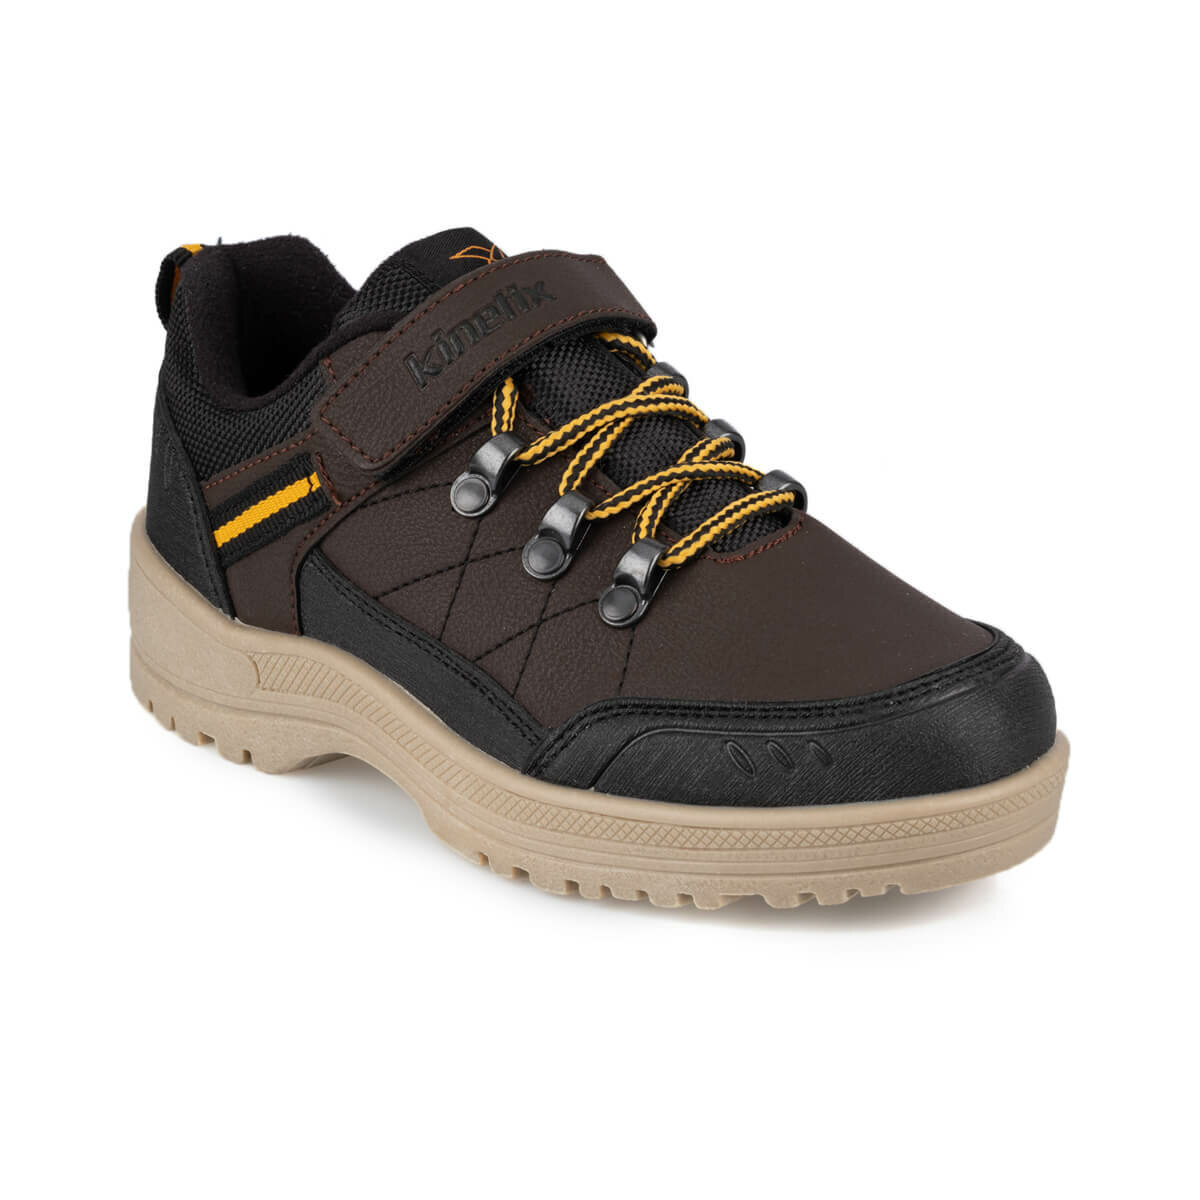 FLO MARS 9PR Brown Male Child Outdoor KINETIX